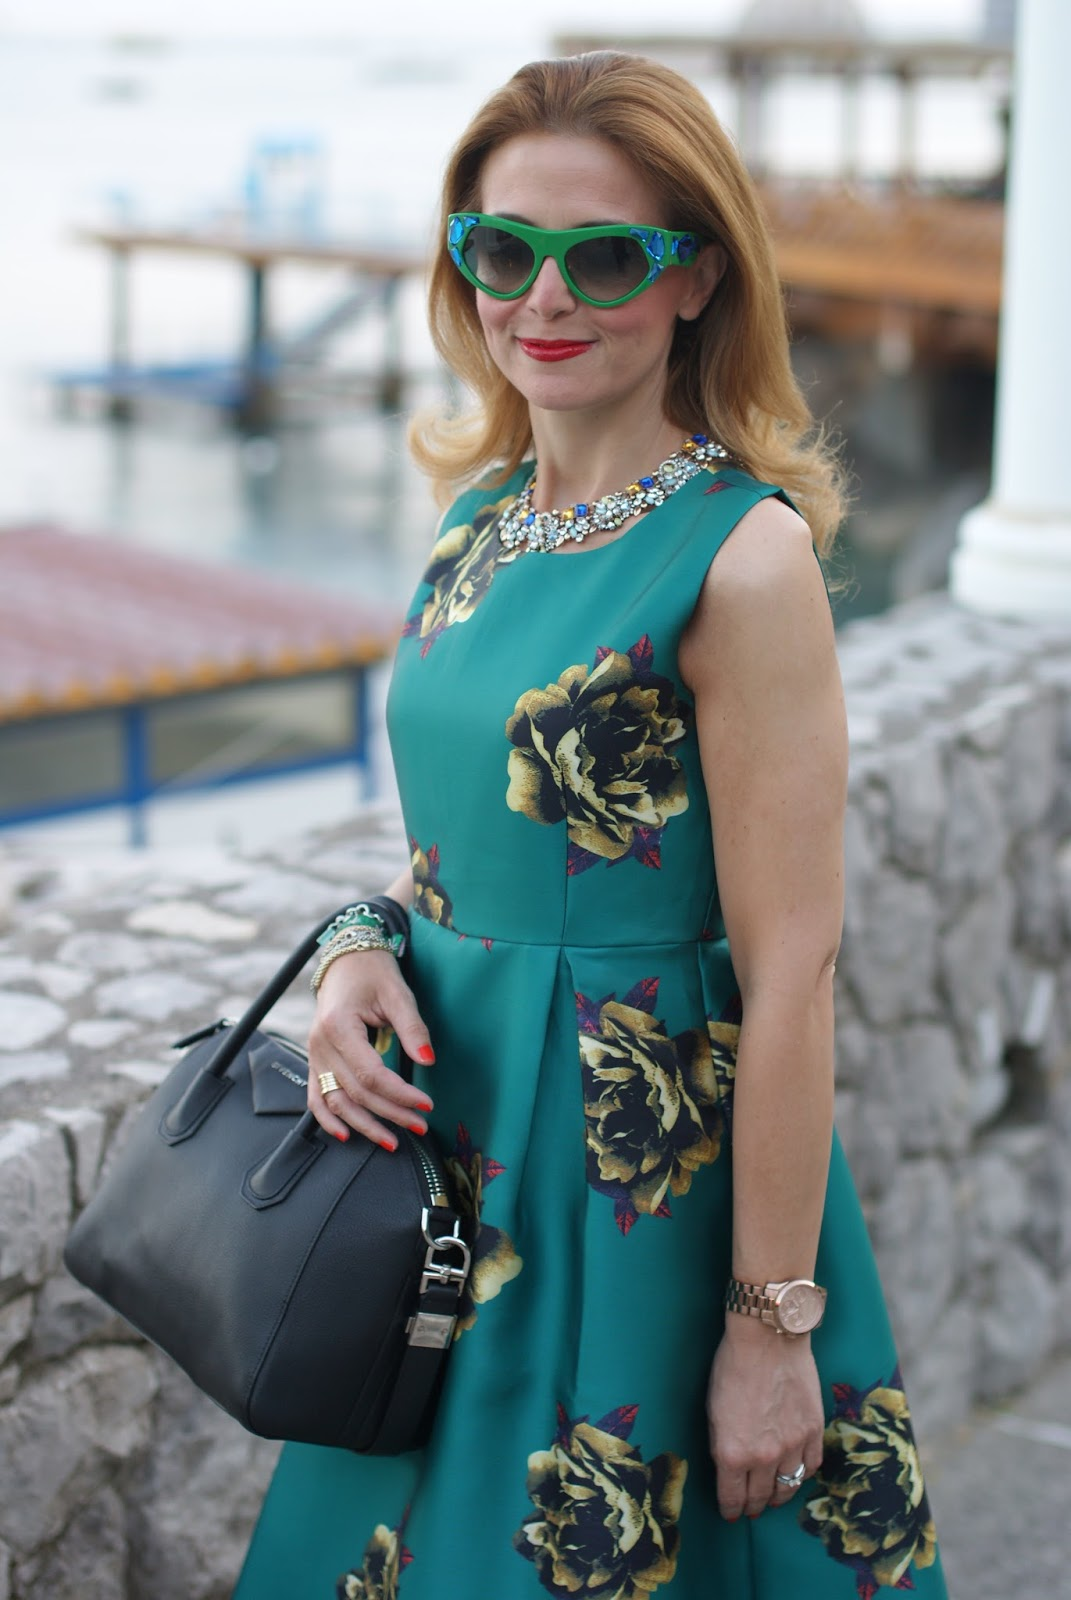 Choies green midi dress and Prada Voice jeweled sunglasses found on Giarre on Fashion and Cookies fashion blog, fashion blogger style